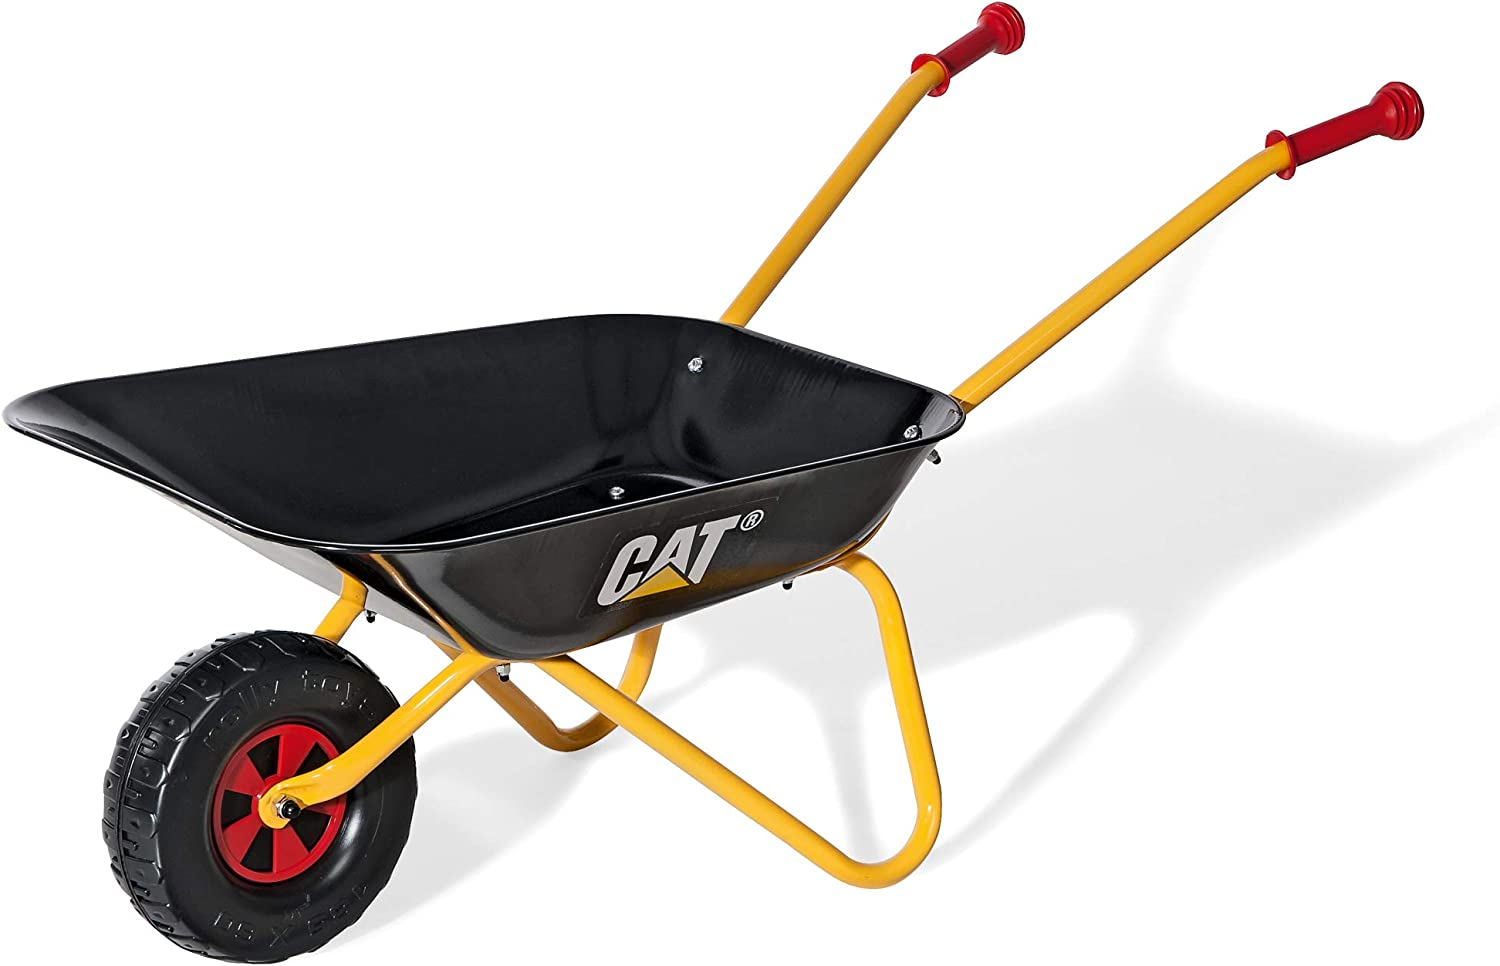 Rolly CAT Kids Wheelbarrow Ride On - Rust-Resistant Seamless Steel Tub with Rubber Hand Grips